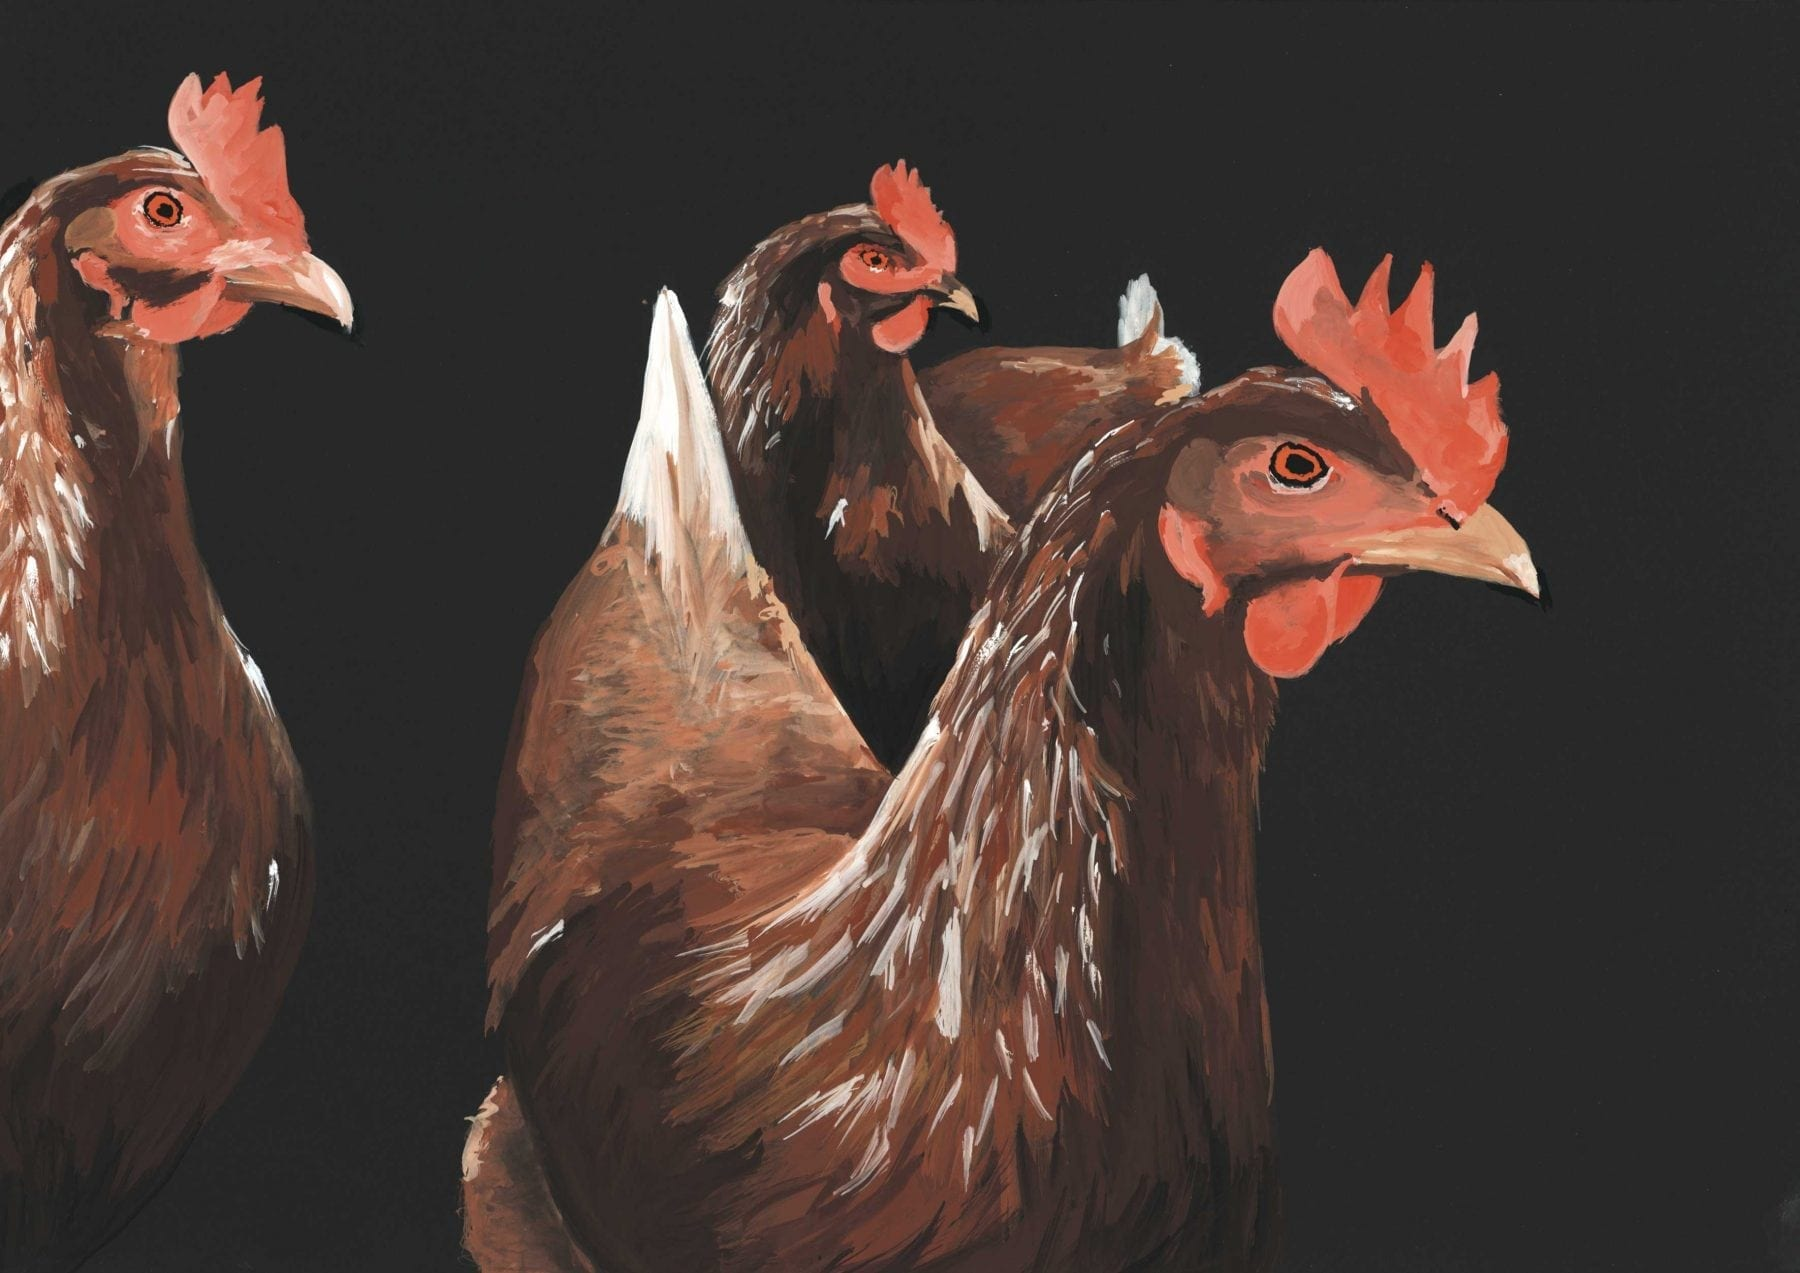 Painting by mouth artist Henry Fraser of three chickens painted in gouache watercolour on a black canvas